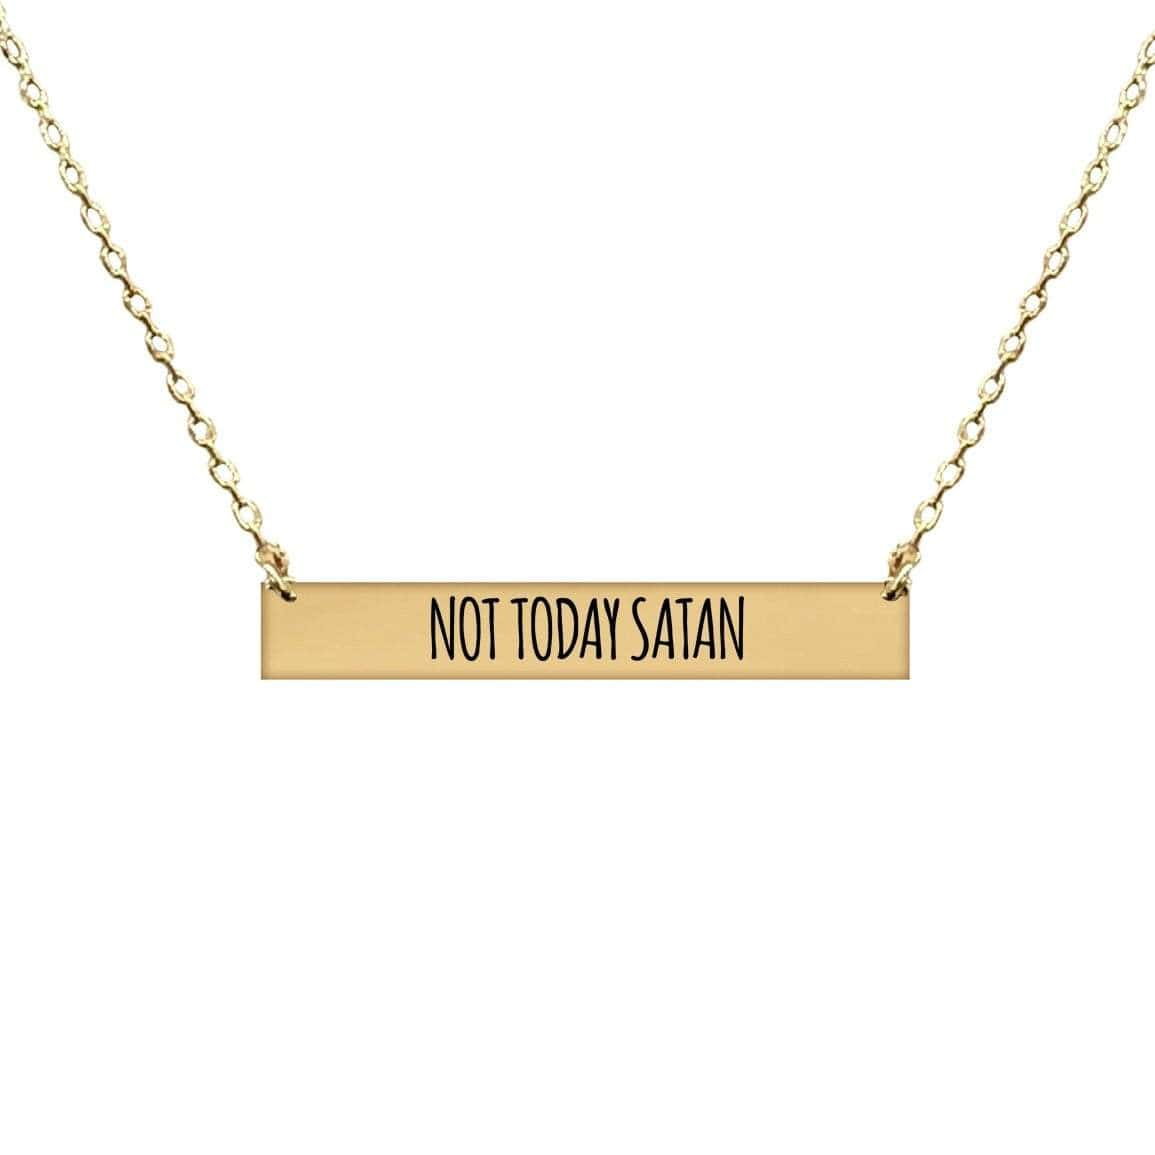 NOT TODAY SATAN BAR NECKLACE